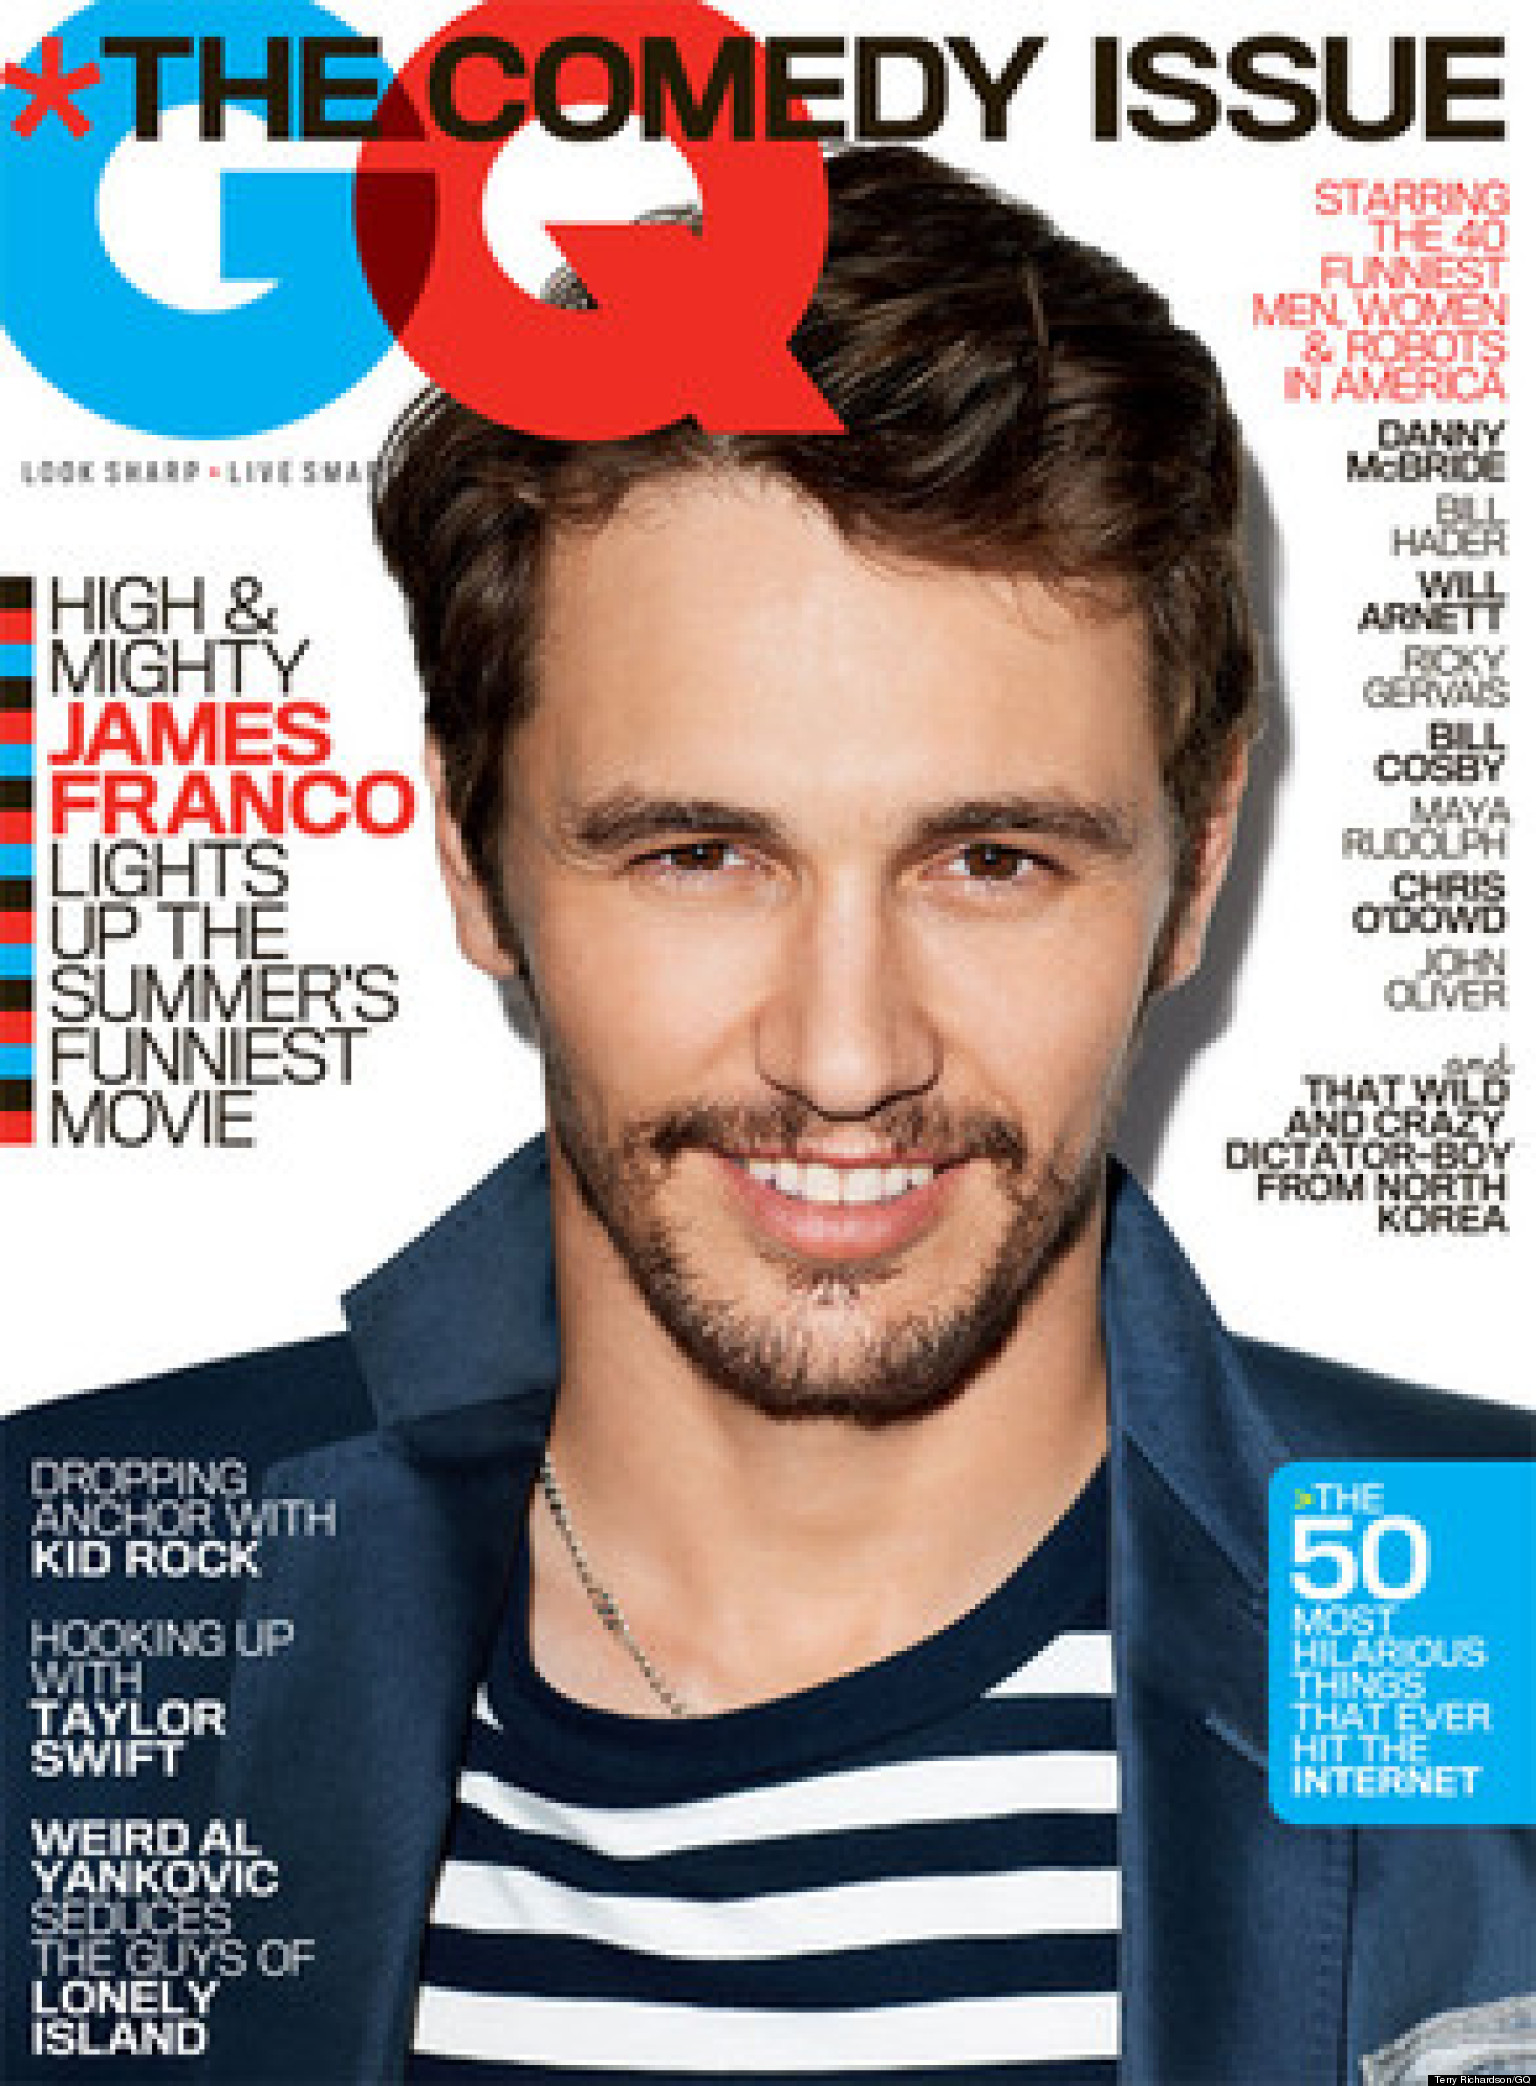 Gq Magazine The Secrets Of R Kelly: James Franco Tells GQ Which Of His Movies 'Sucks' (PHOTO